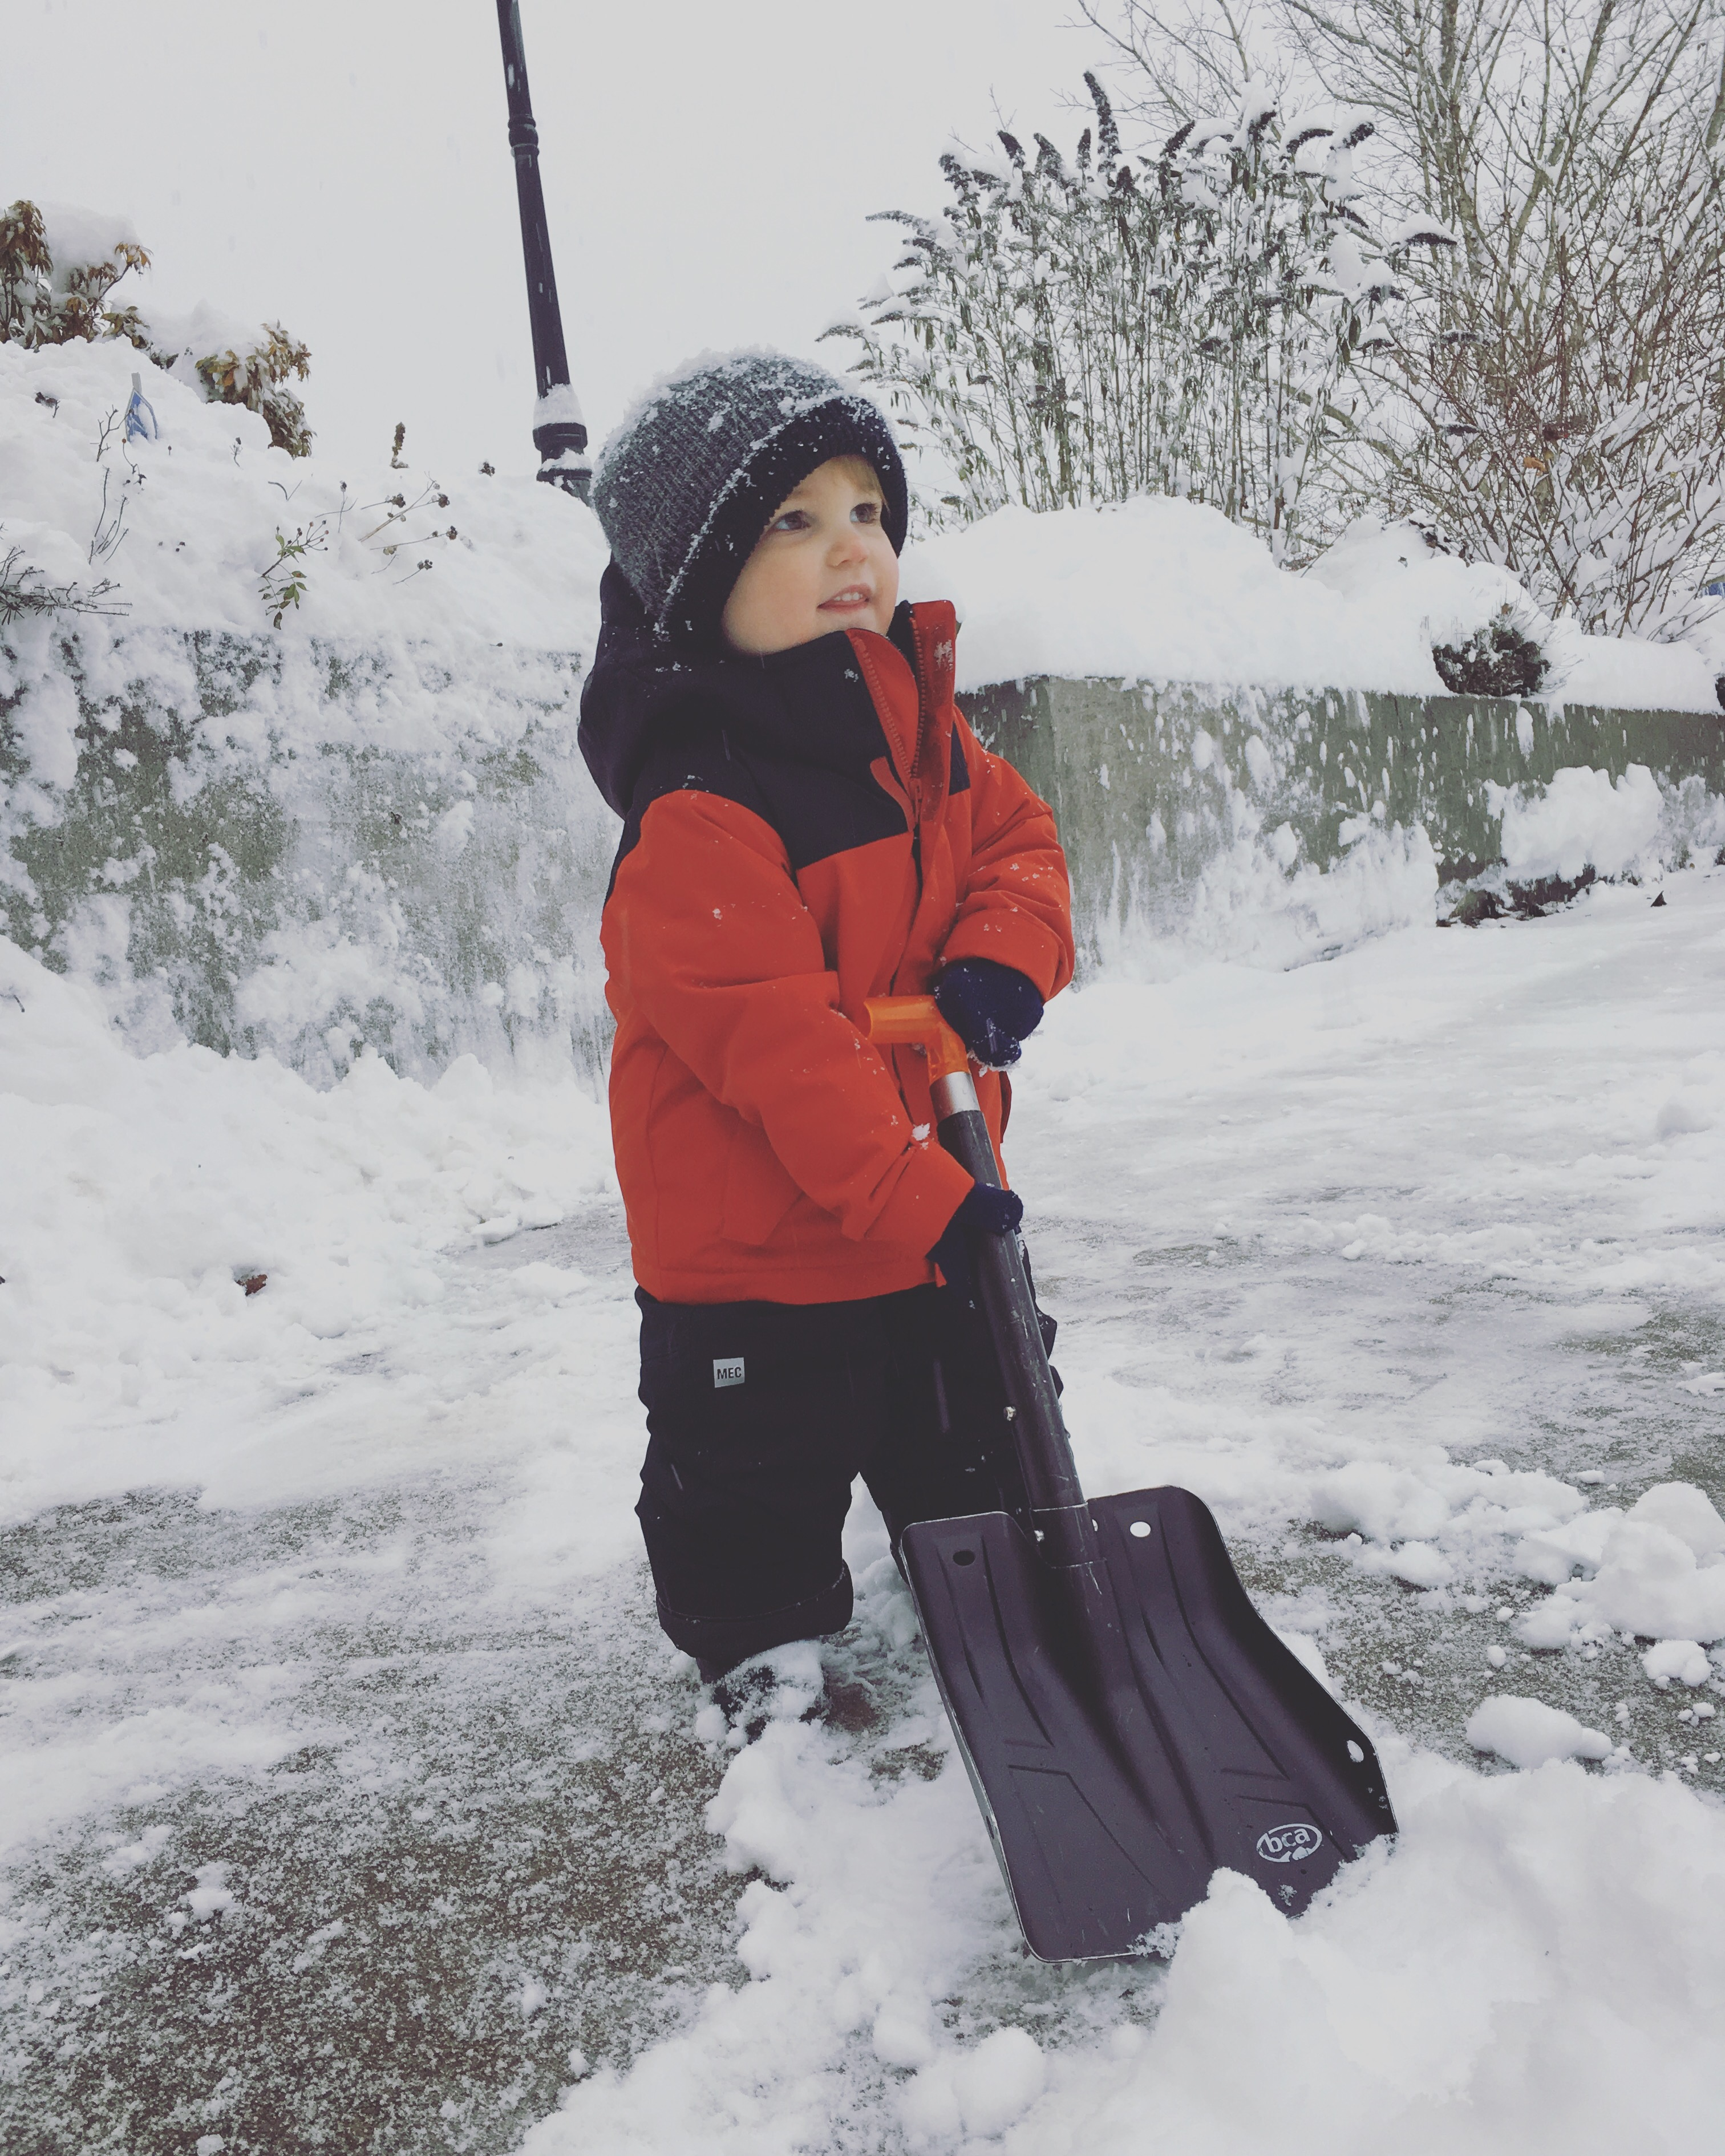 Little helper shoveling the driveway one of his favorite activities